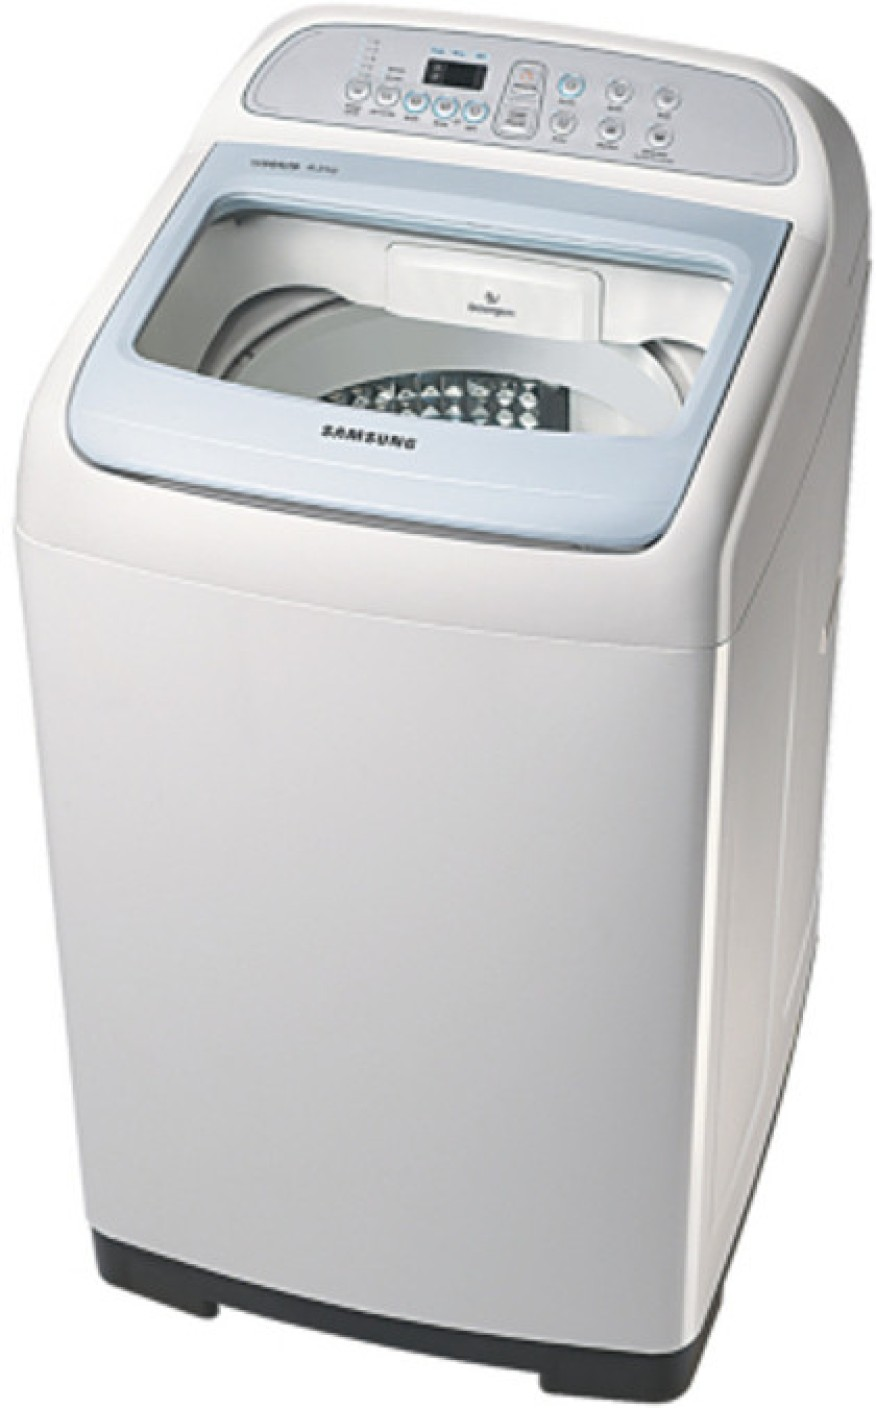 Samsung 6.2 kg Fully Automatic Top Load Washing Machine ...